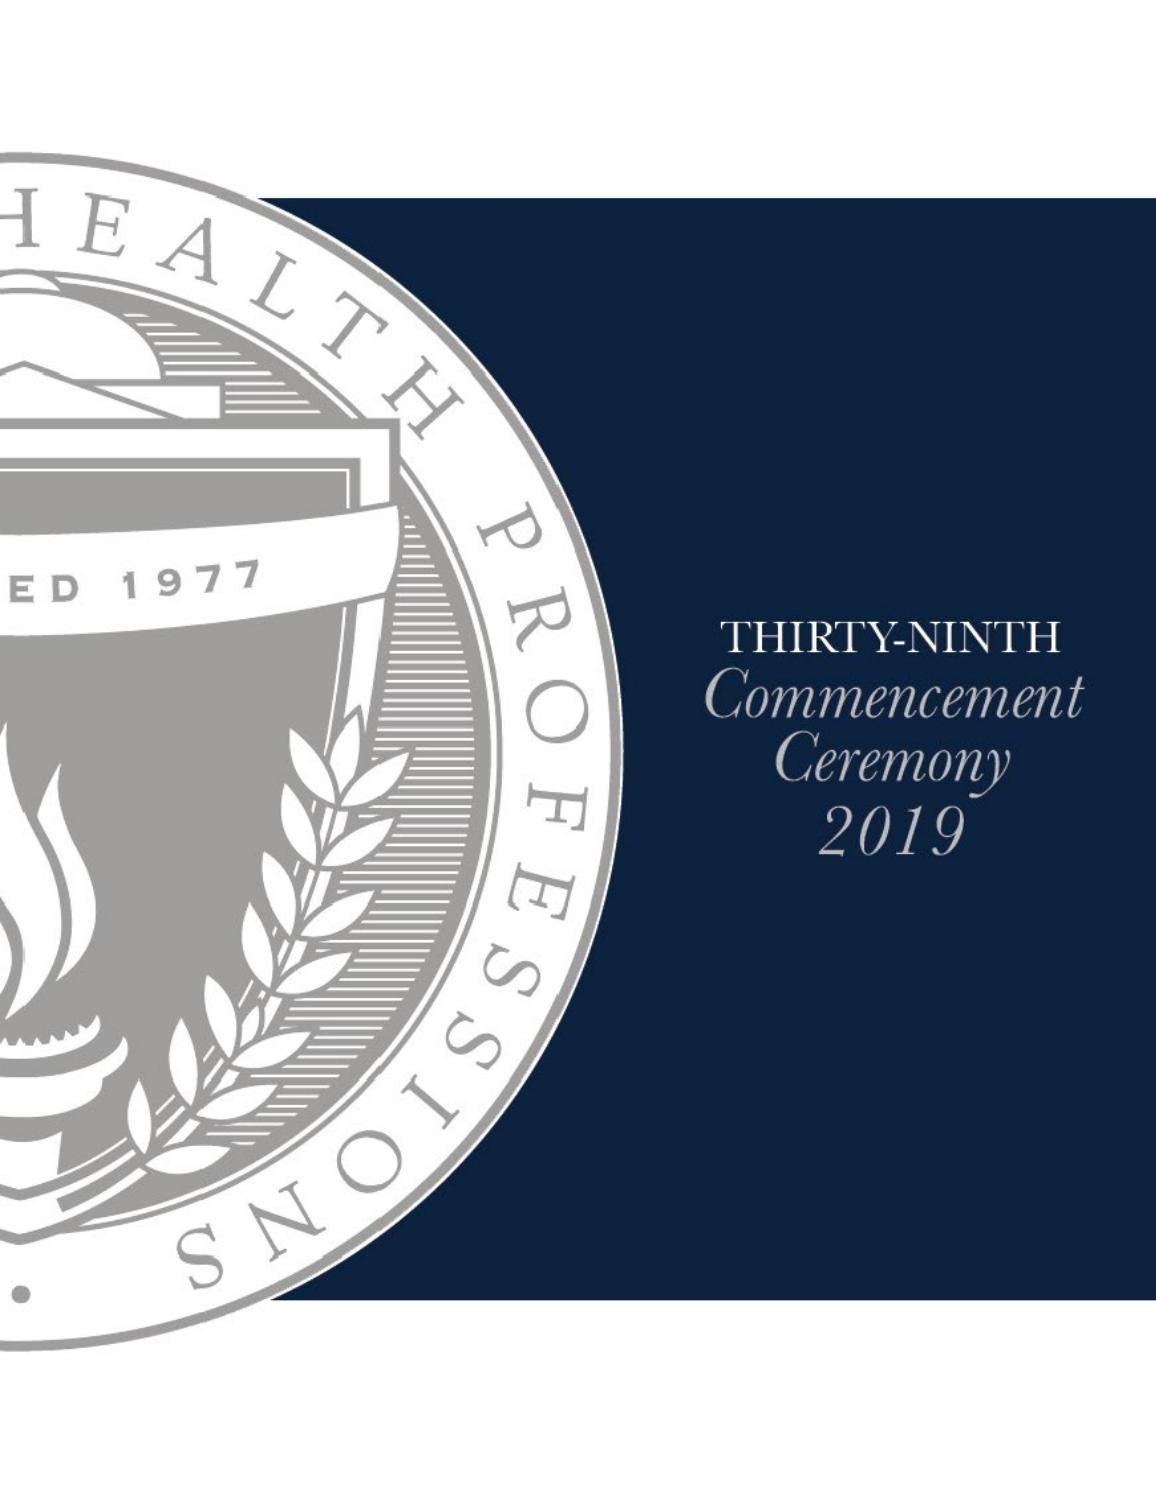 MGH Institute of Health Professions - 39th Commencement